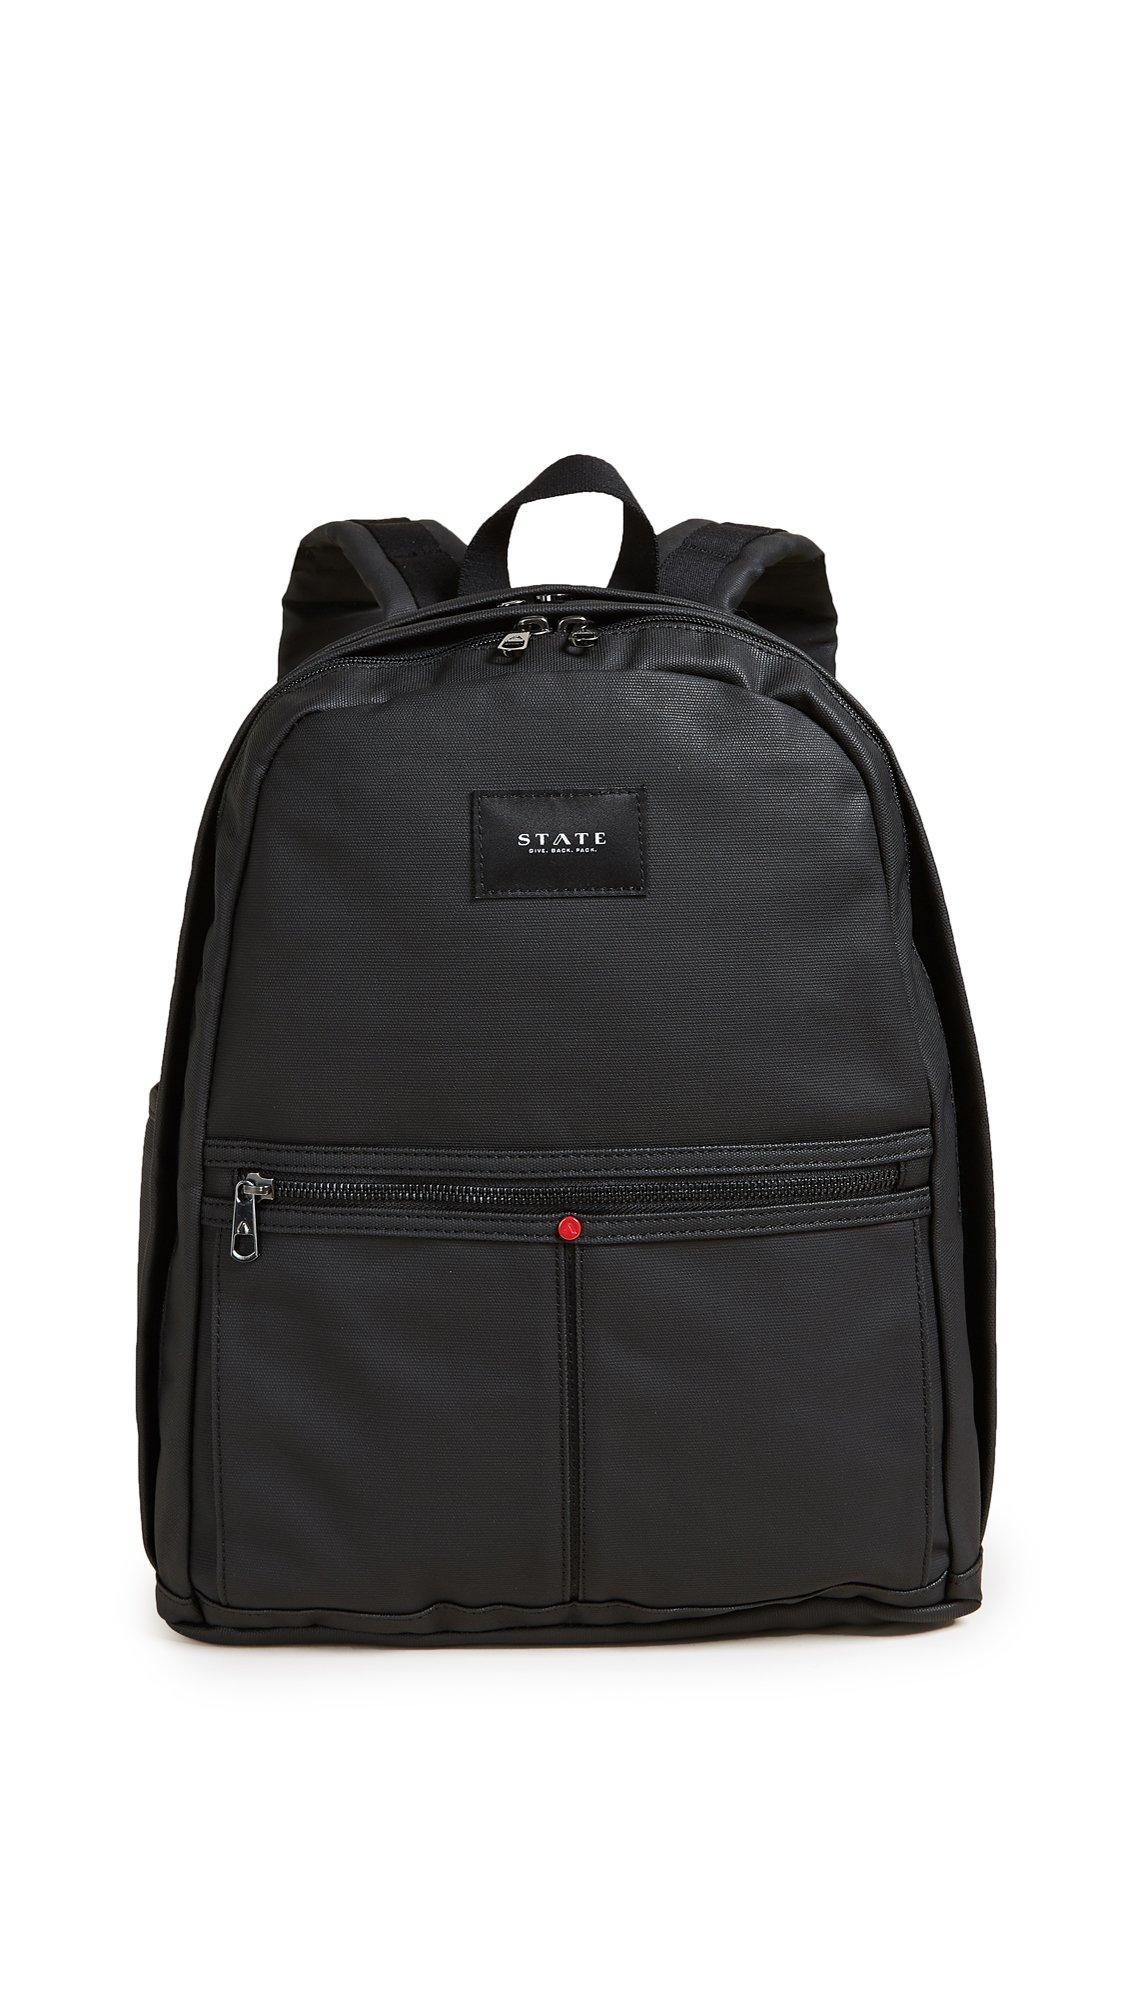 STATE Women's Kent Backpack, Black, One Size by STATE Bags